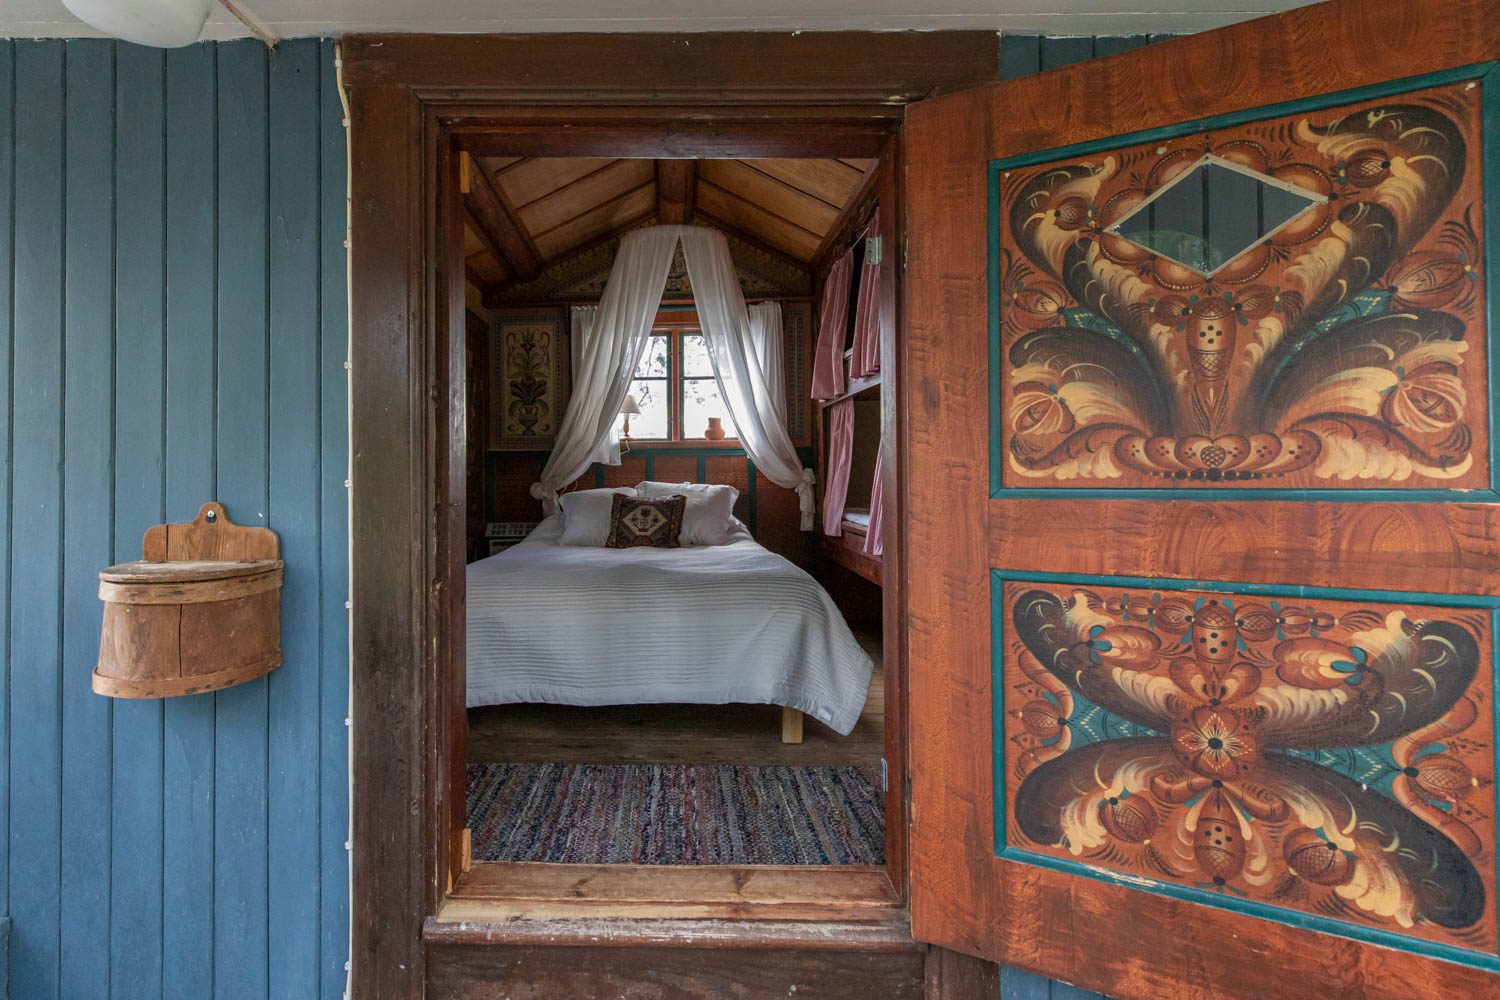 Spend the night in a cabin from the 1700s